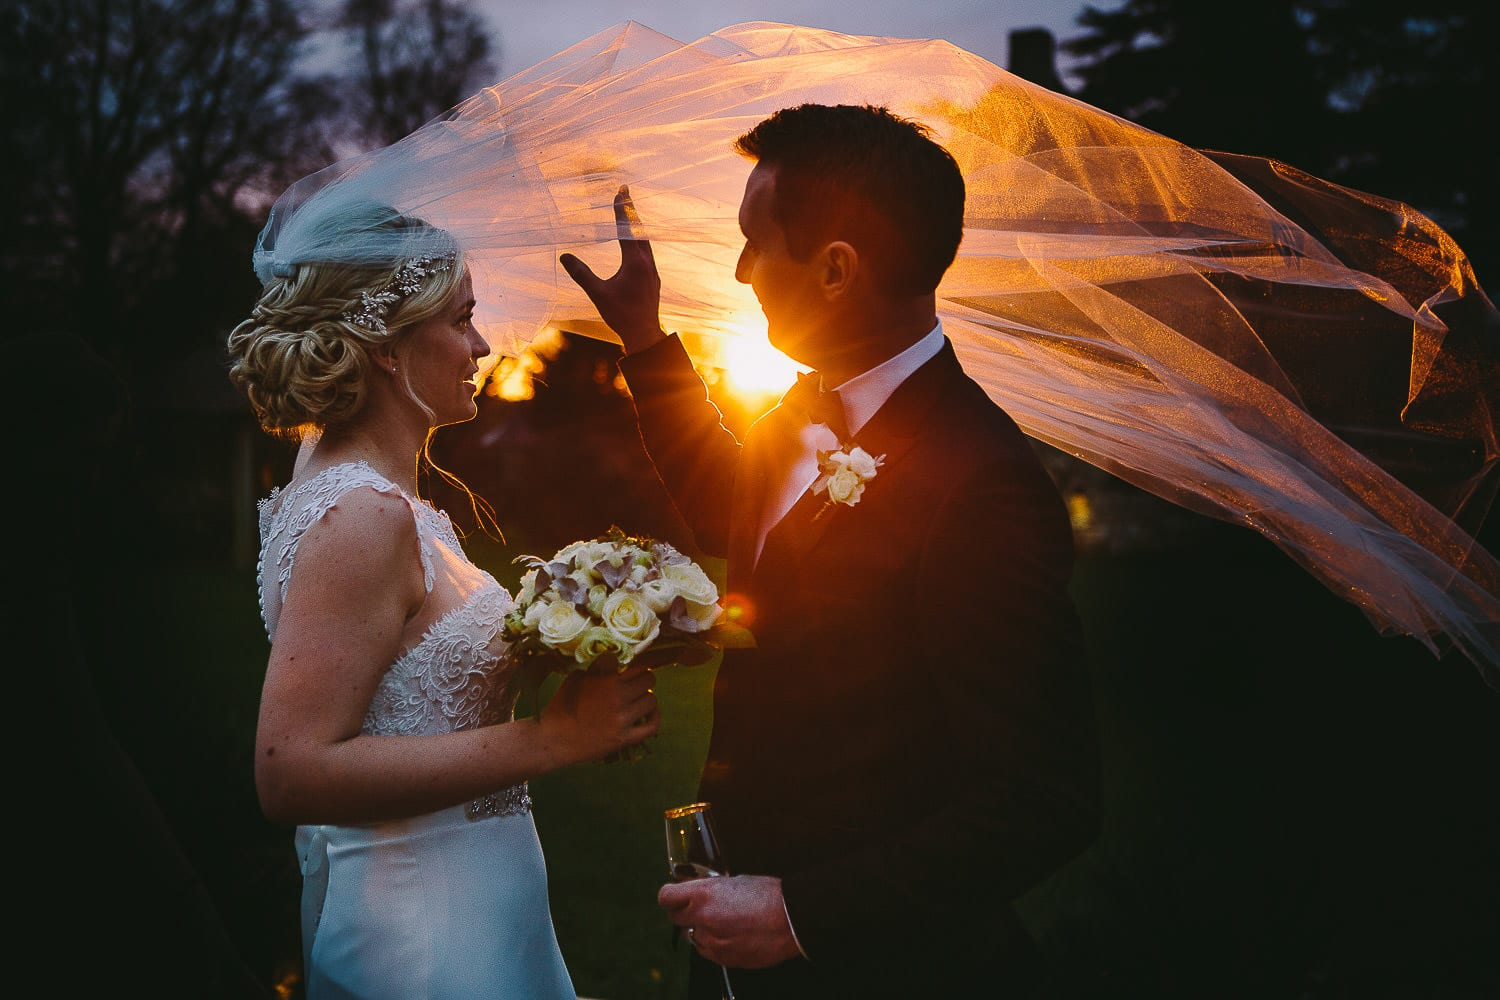 Sunset image of couple with bride's veil blowing in the wind